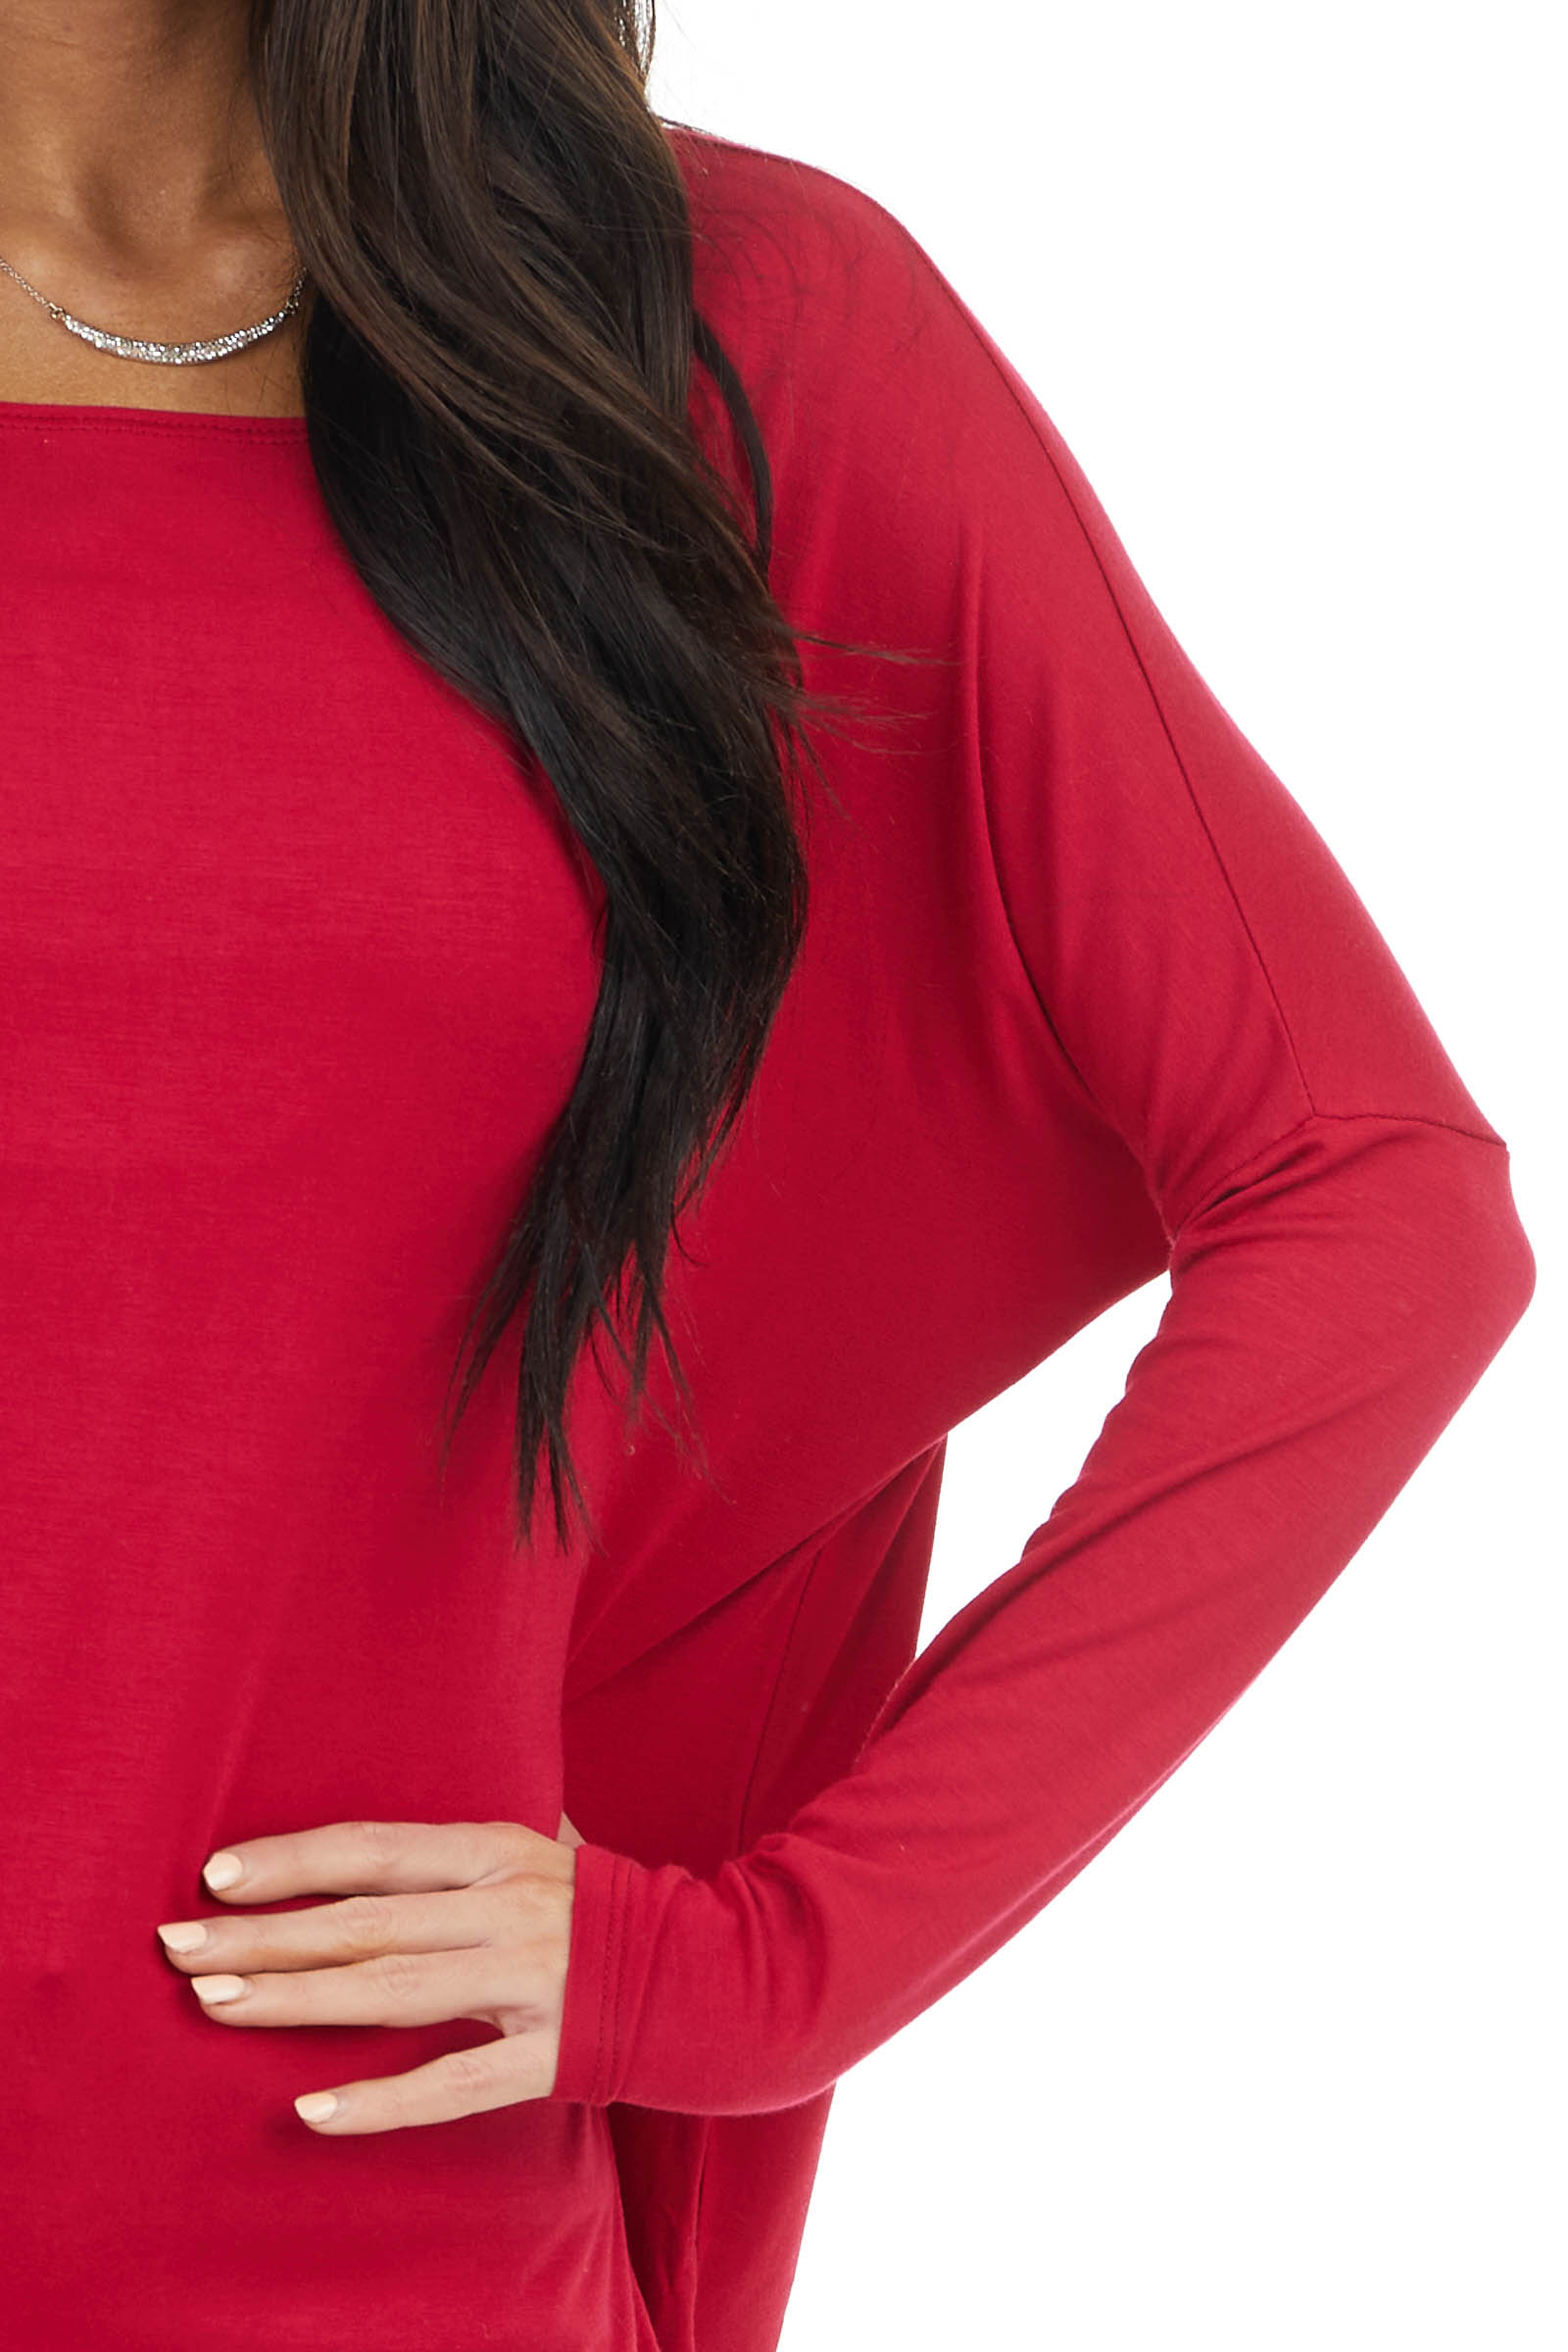 Ruby Long Sleeve Stretchy Knit Top with Boat Neckline